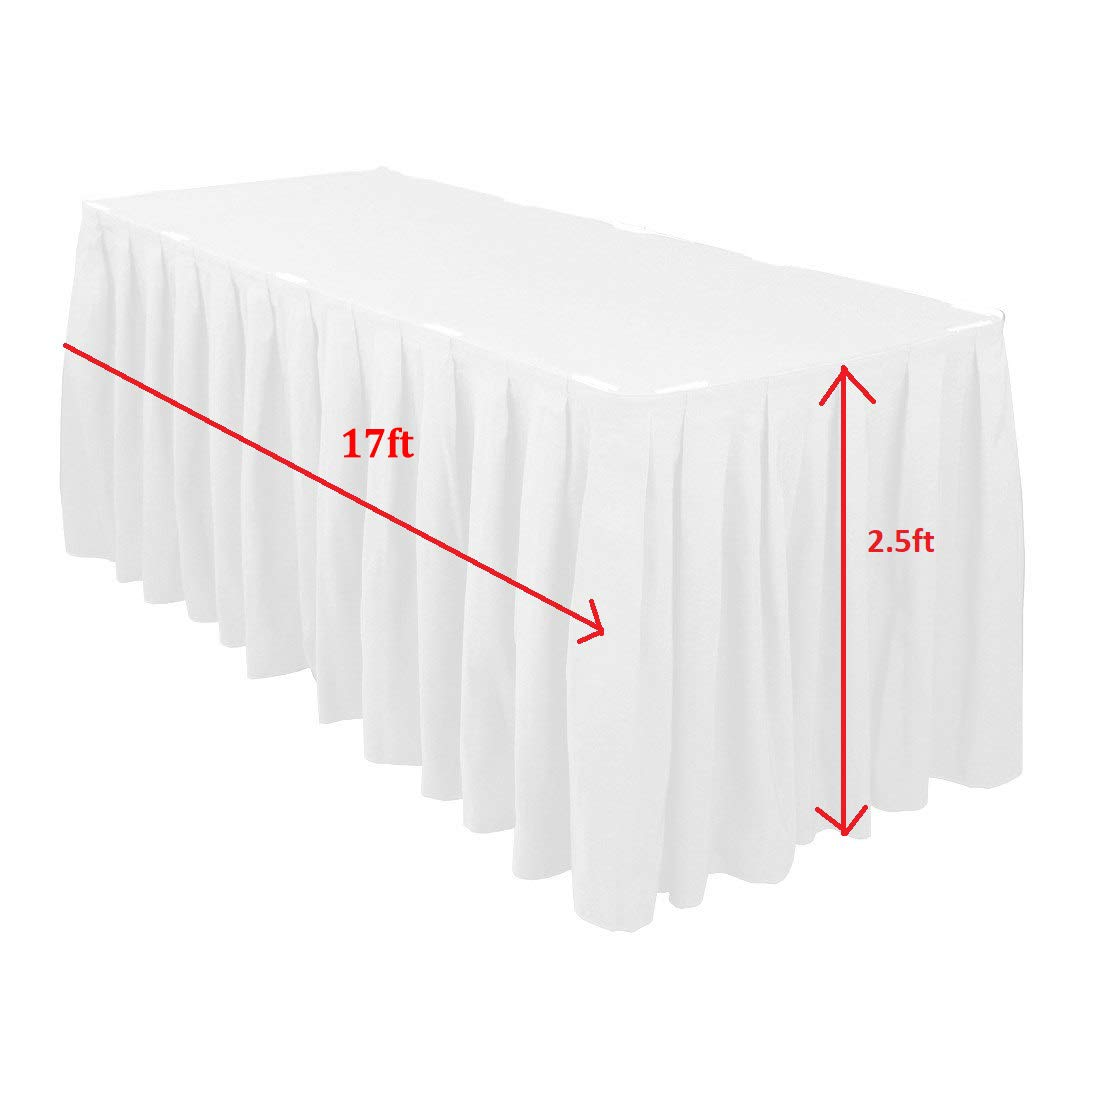 Catering Event Decoration Birthday Parties Banquet Tablewear 1 piece Trimming Shop Black 14 Feet Pleated Rectangle Polyester Table Skirt for Wedding